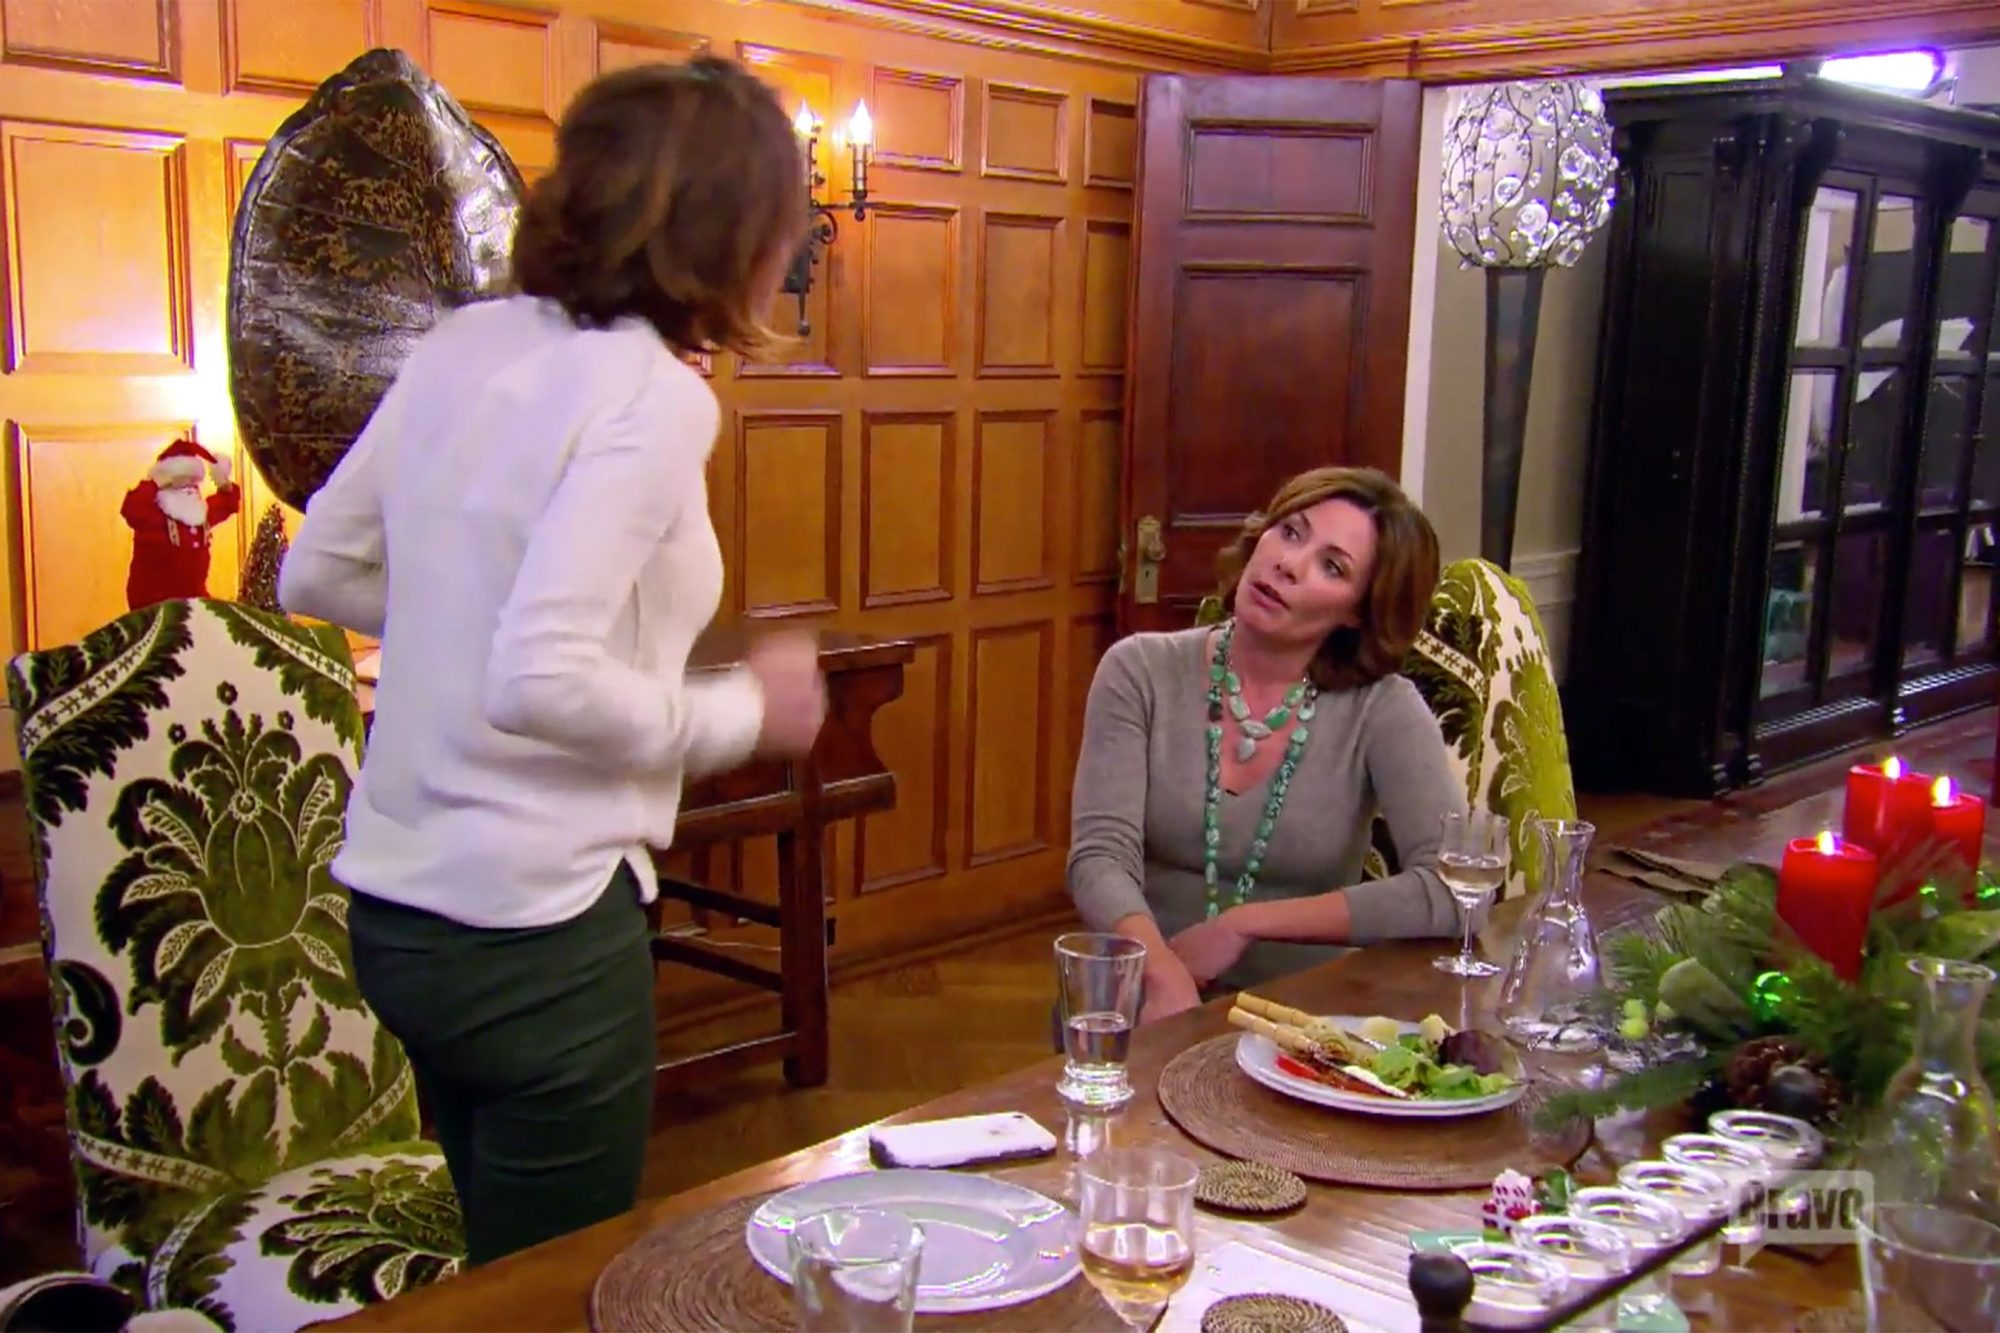 THE-REAL-HOUSEWIVES-OF-NEW-YORK-CITY-—-December--Berkshires-County-(s8e9)